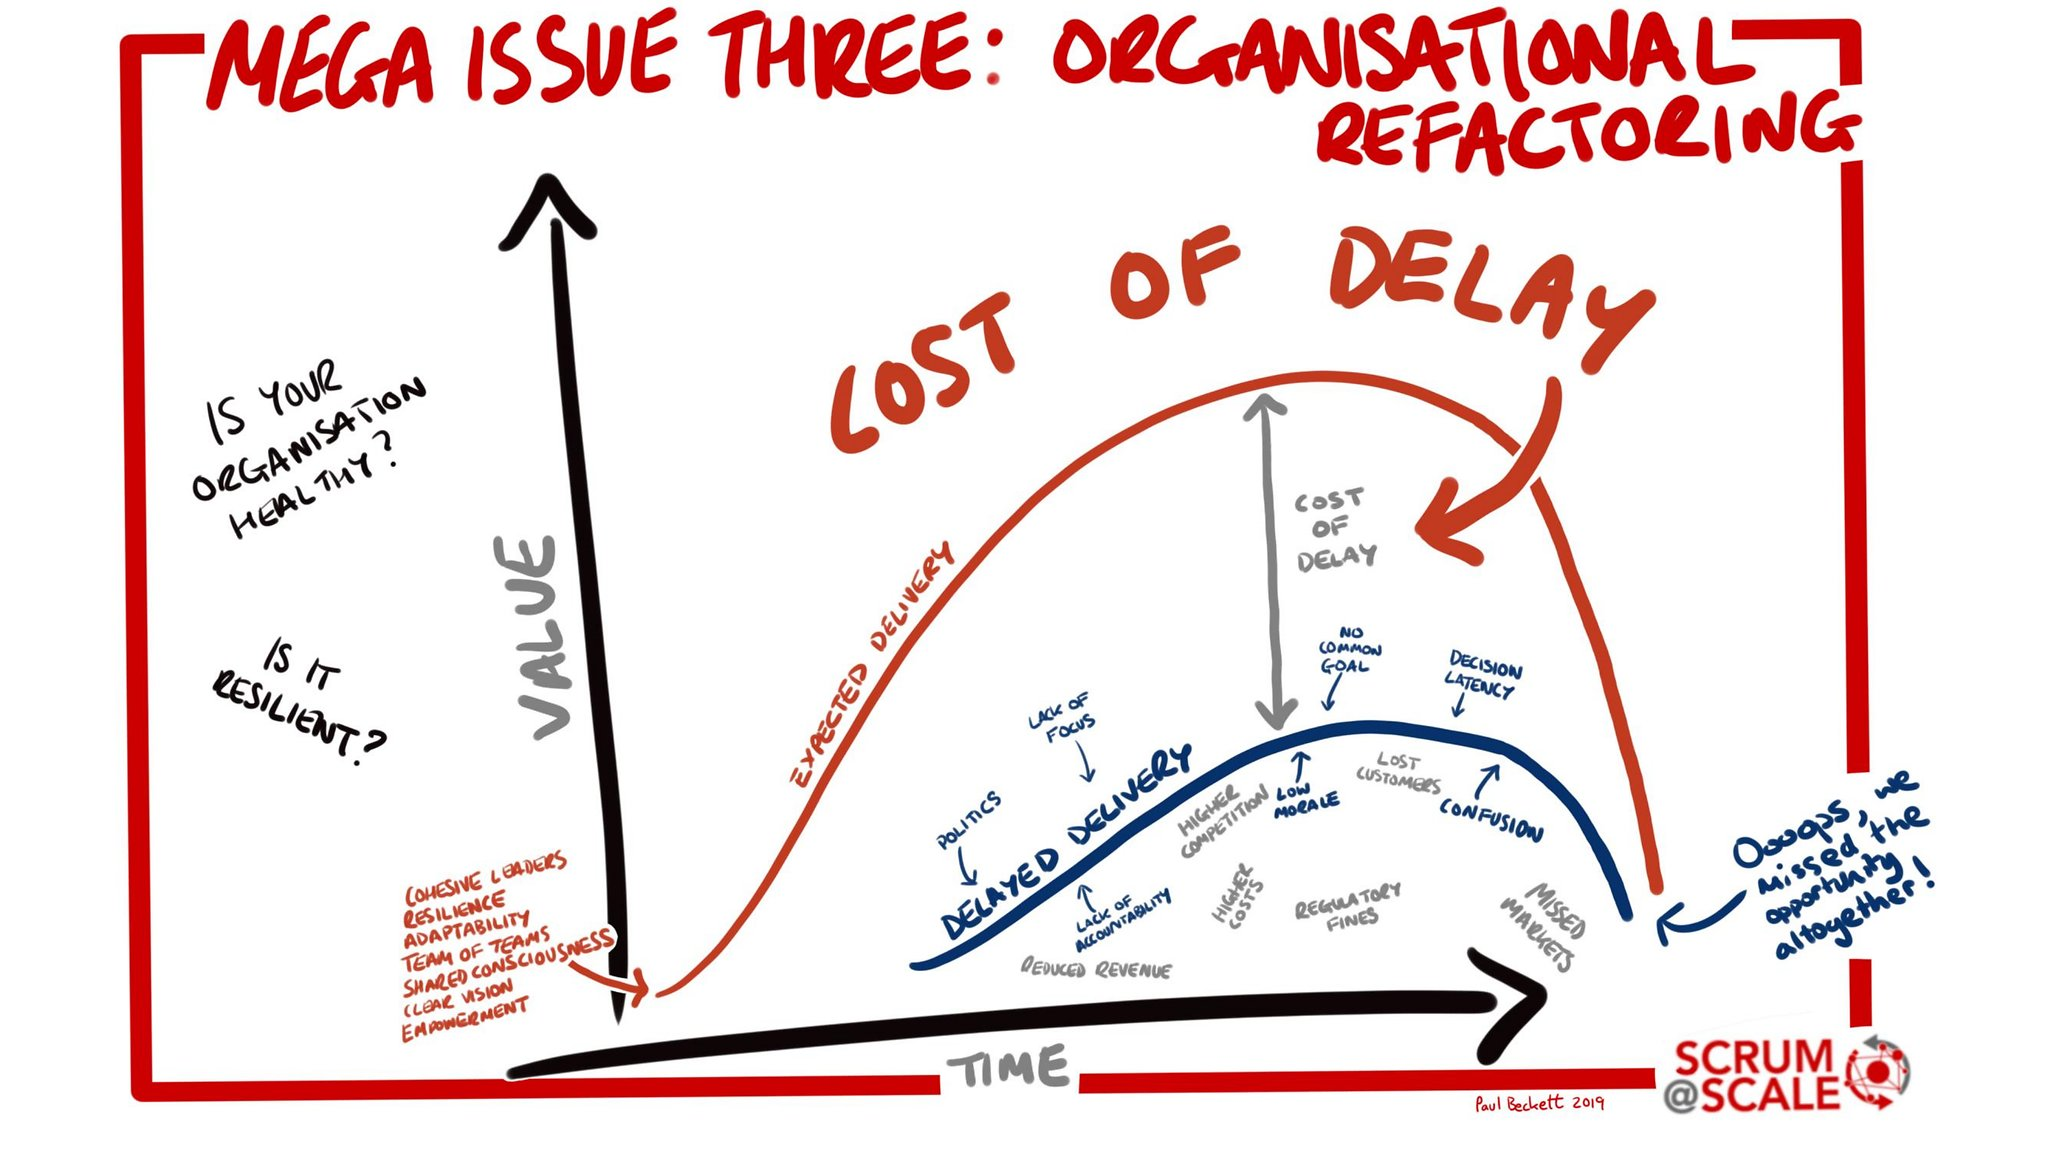 Cost of Delay - Scrum@Scale Mega-Issue #3 - Organisational Refactoring